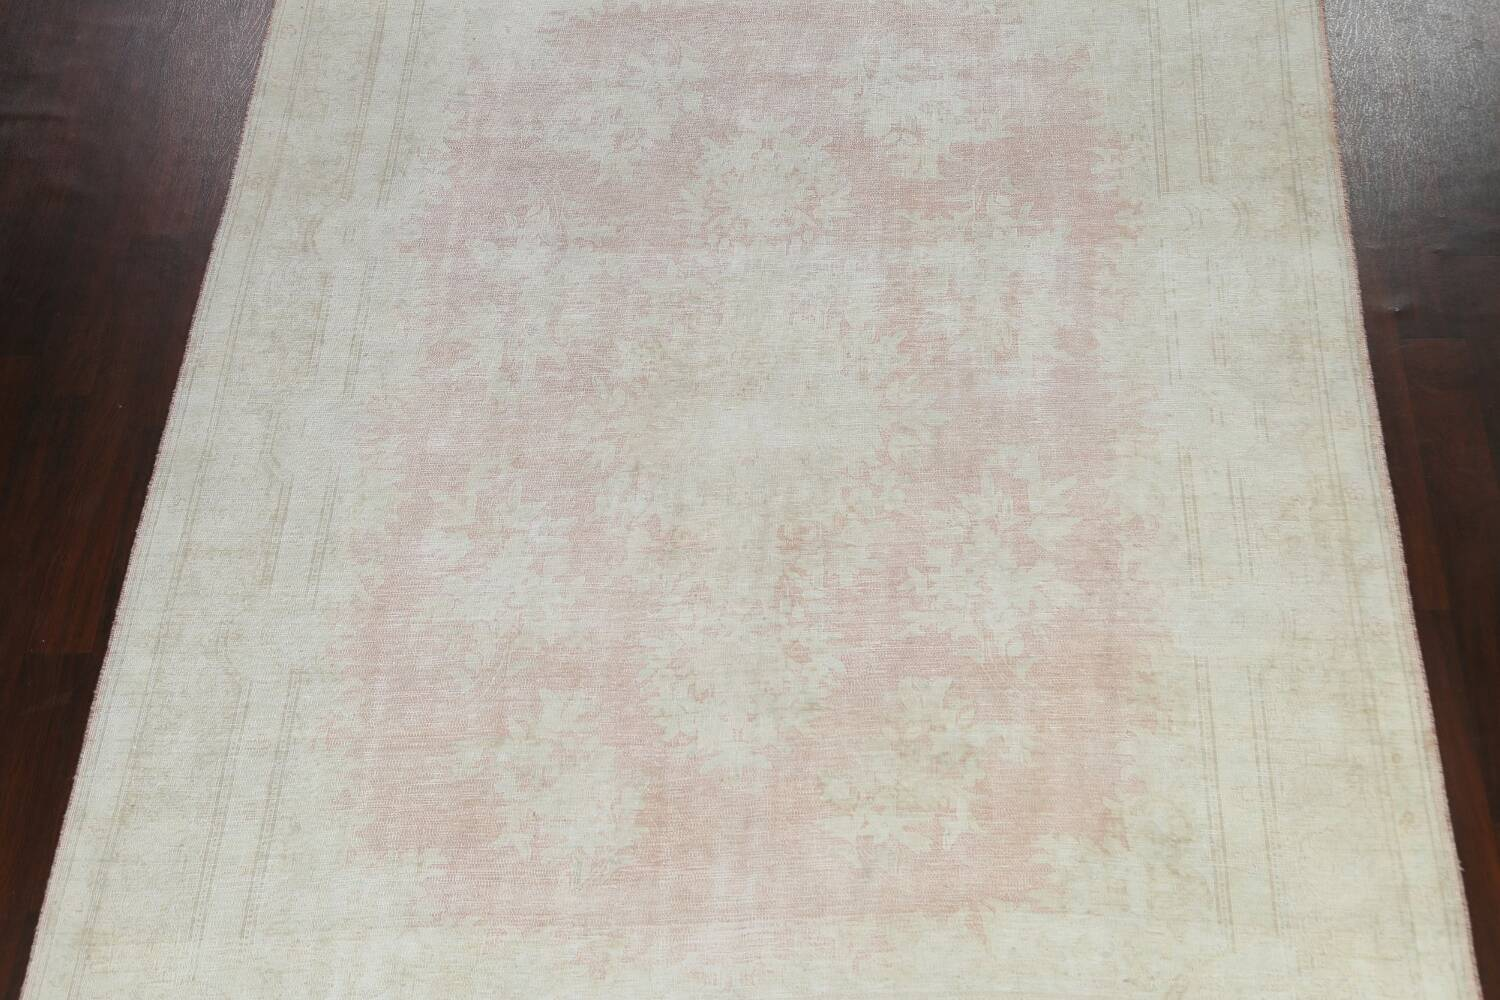 Antique Muted Distressed Kerman Persian Area Rug 8x11 image 3